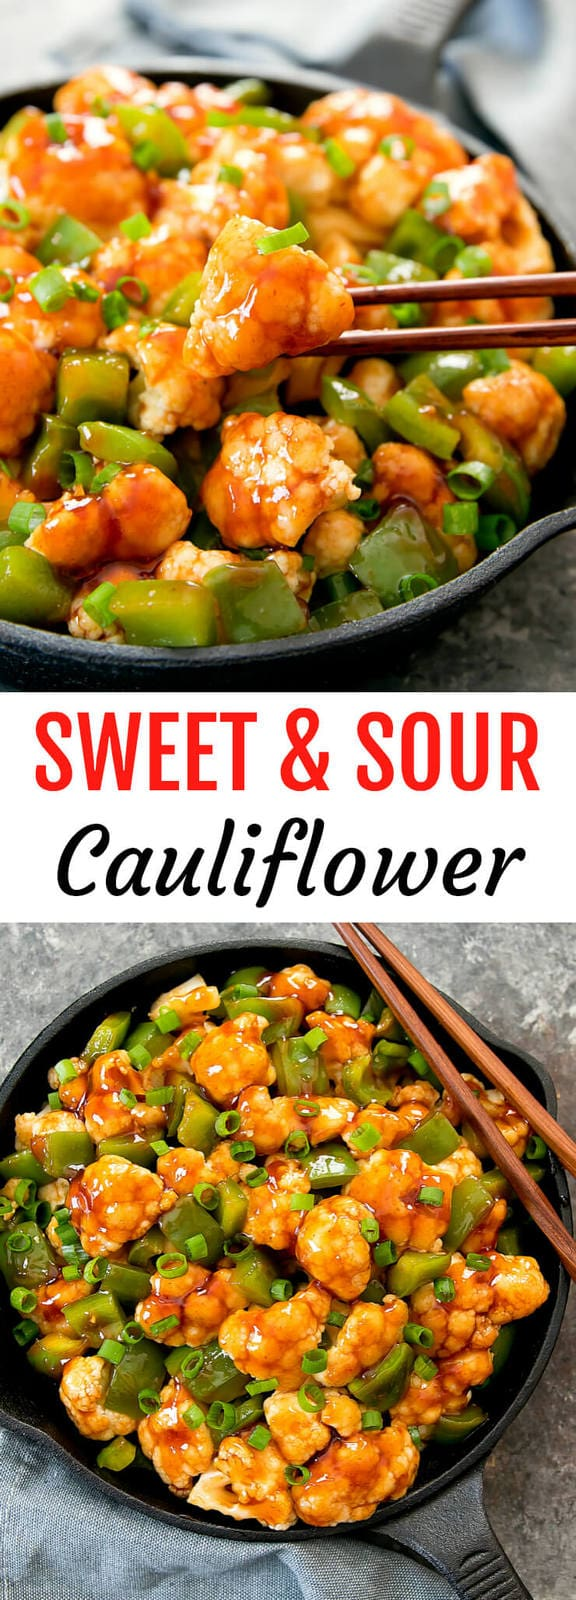 Sweet and Sour Cauliflower. A healthier version of the popular Chinese take-out. It's ready in less than 30 minutes!